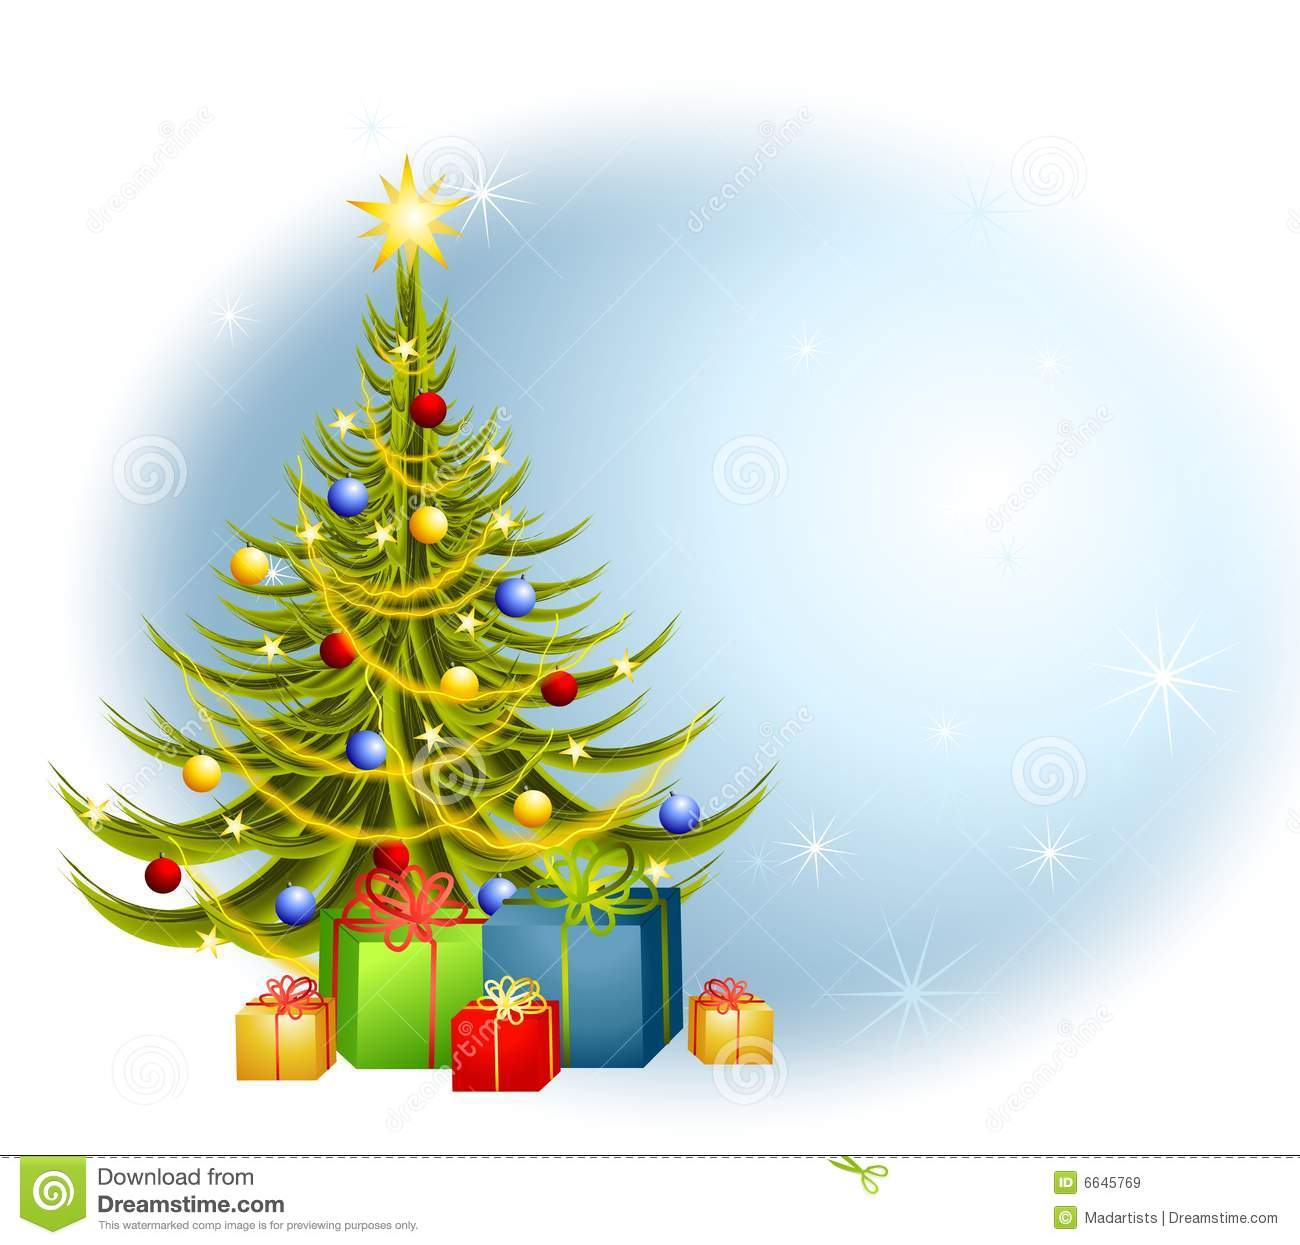 Christmas Tree Gifts Background Royalty Free Stock Images ...